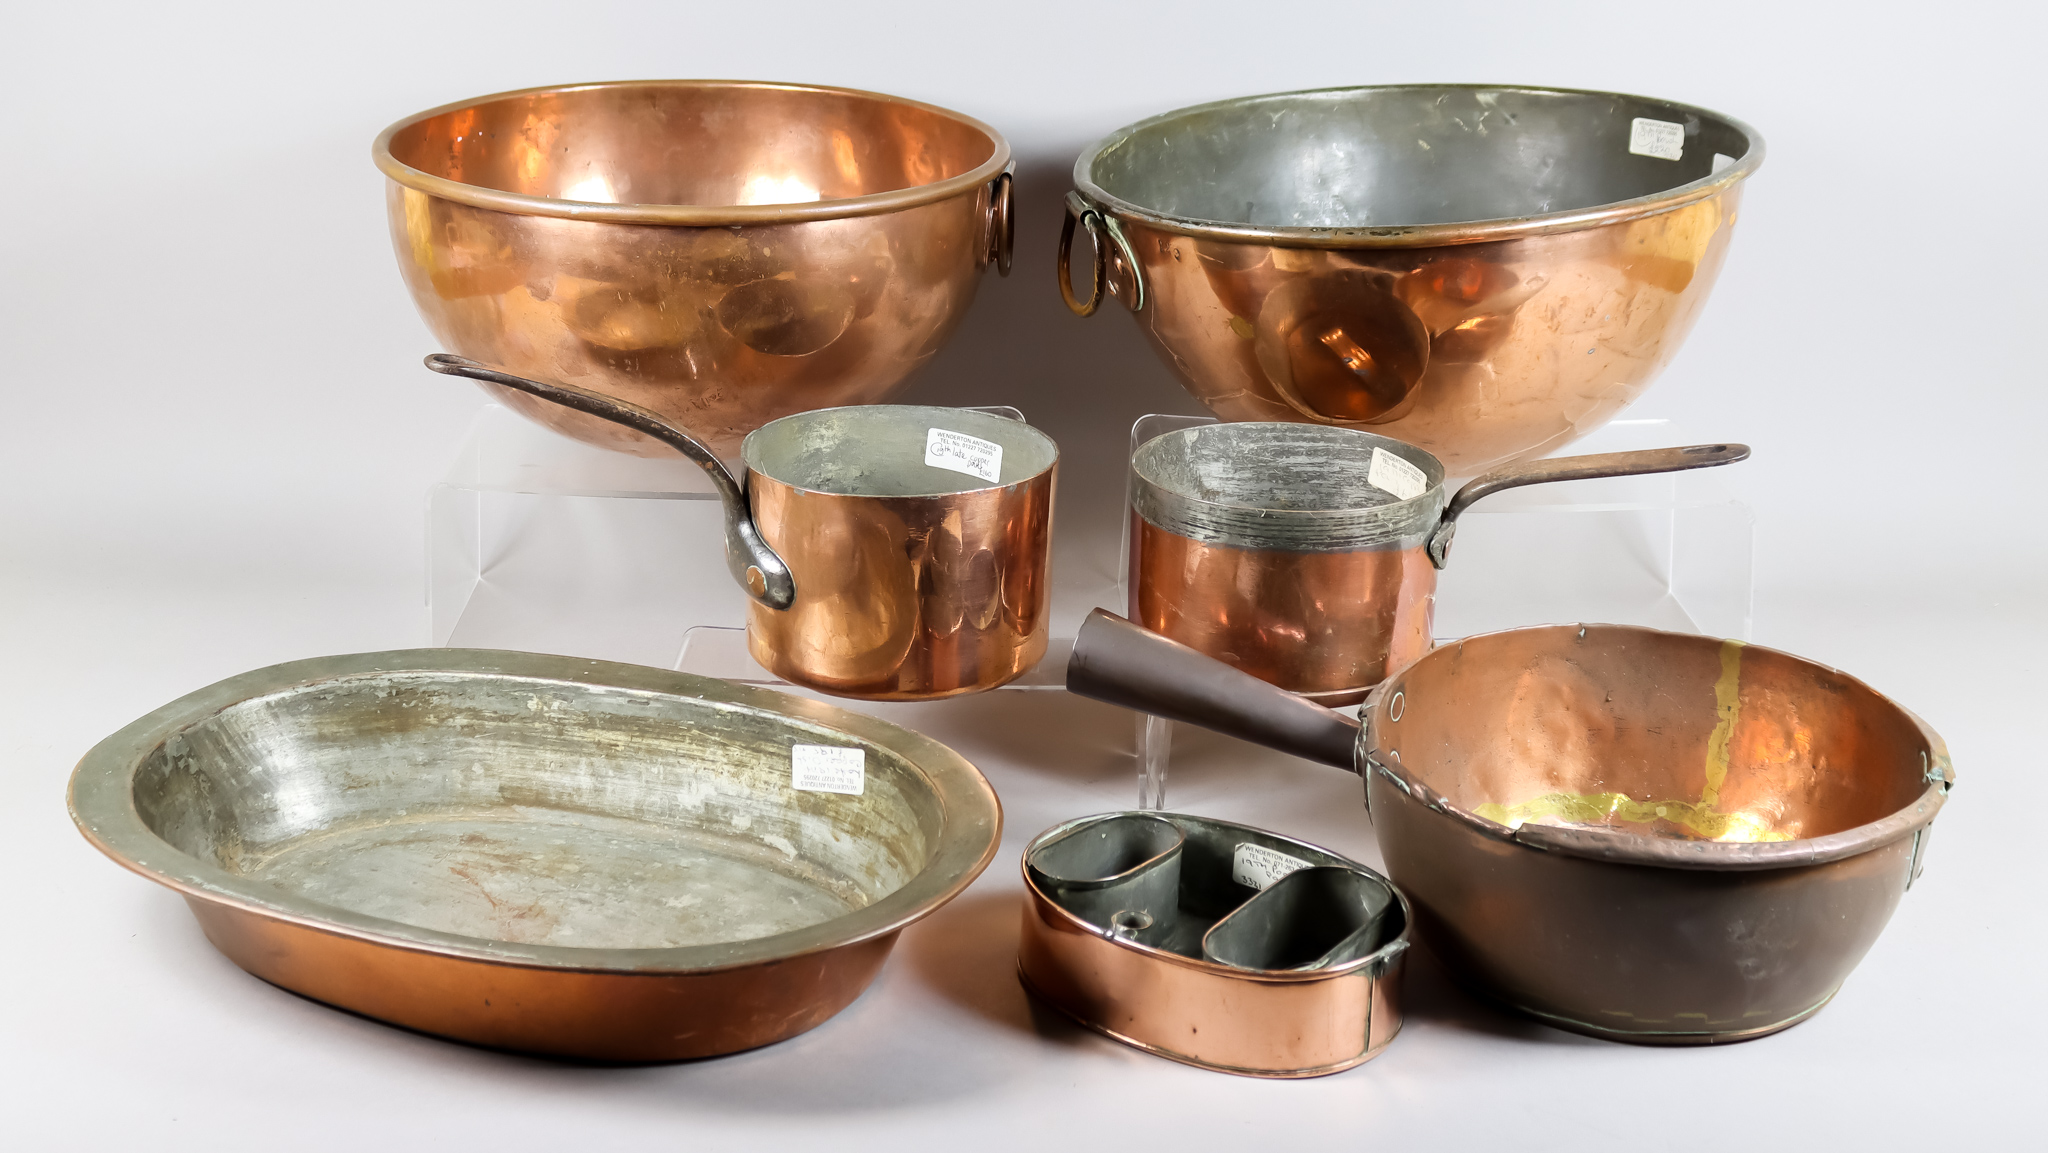 Two Copper Circular Mixing Bowls, 19th Century, and Mixed Copper Ware, the mixing bowls with loop